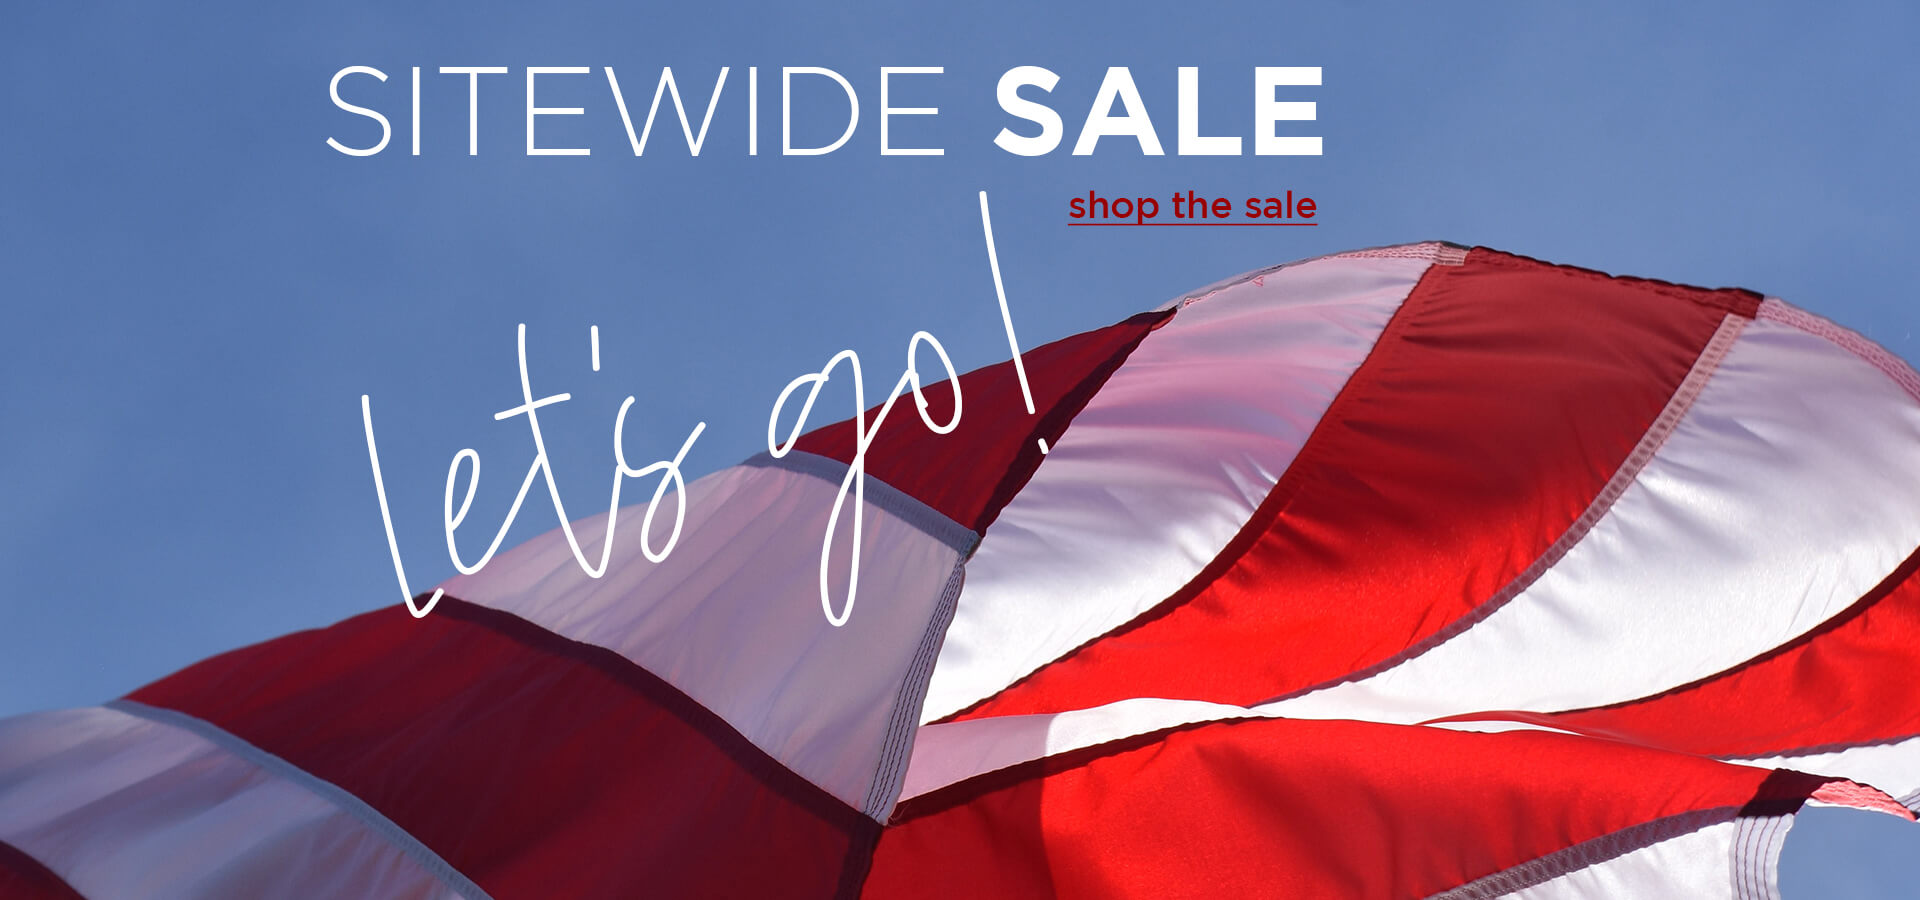 8d4271224e7af2 Use code CELEBRATE10 for 10% off your entire order. Site wide sale ends  Sunday at midnight.